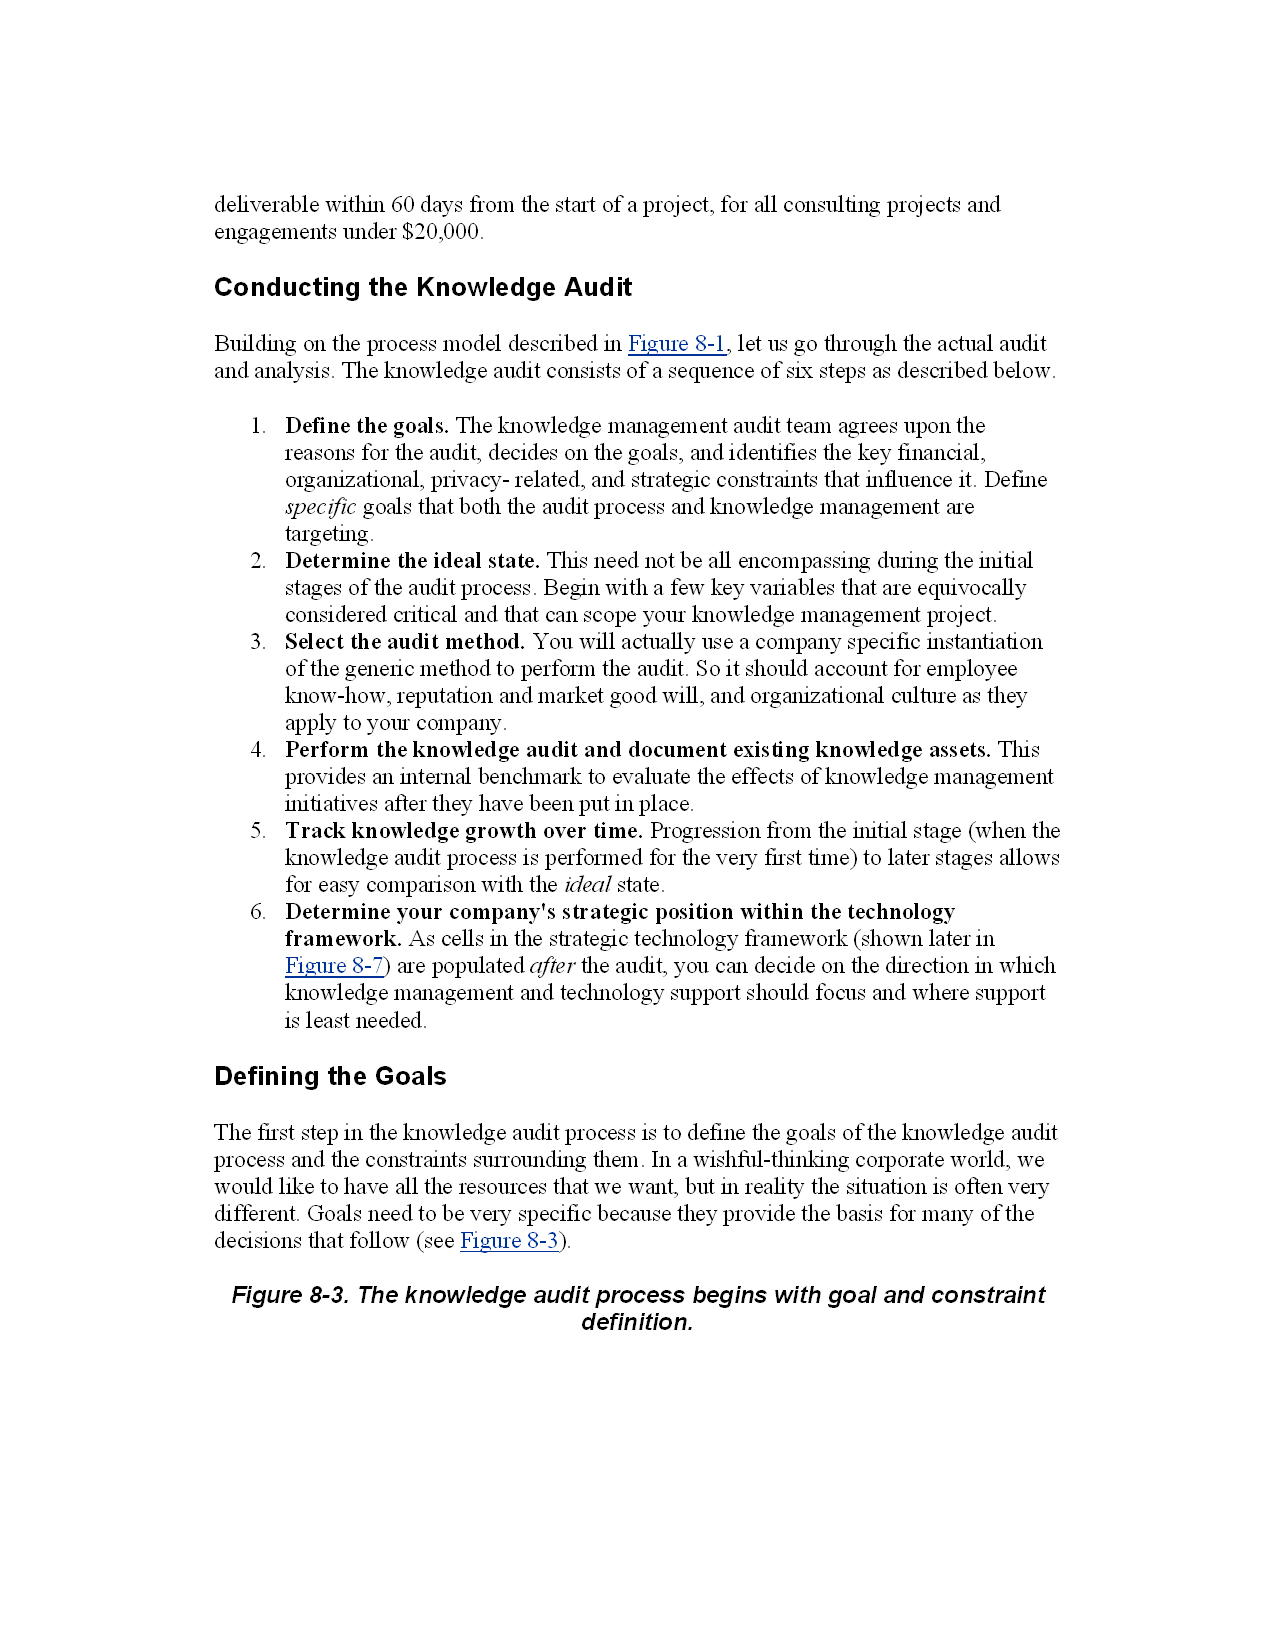 Conducting the Knowledge Audit